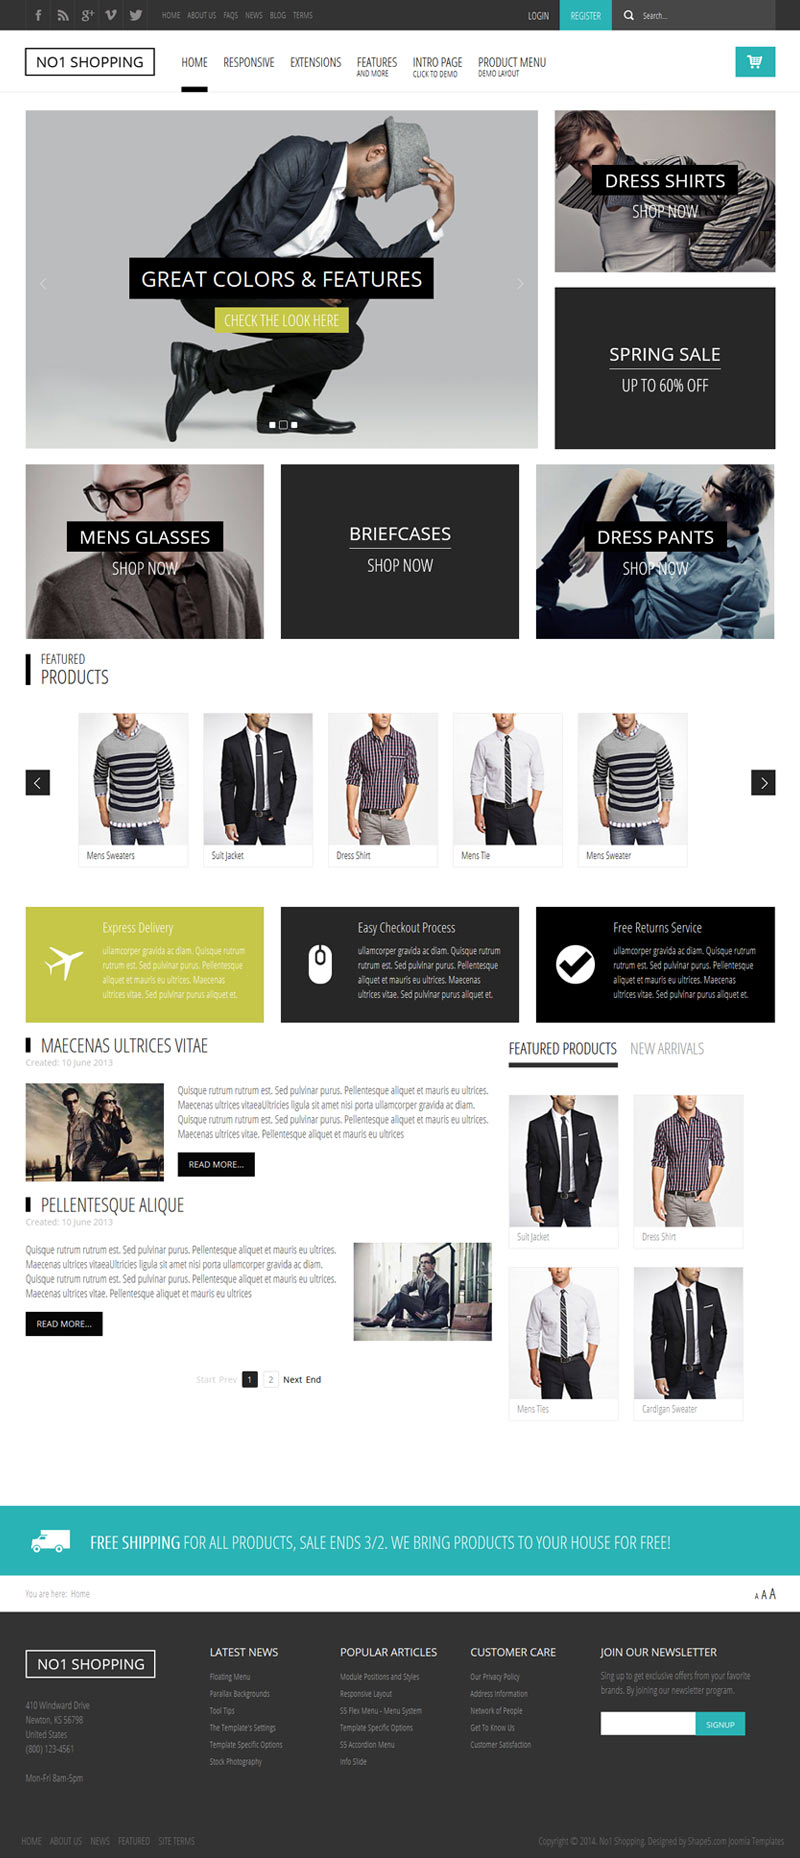 No1 Shopping Joomla eCommerce Template